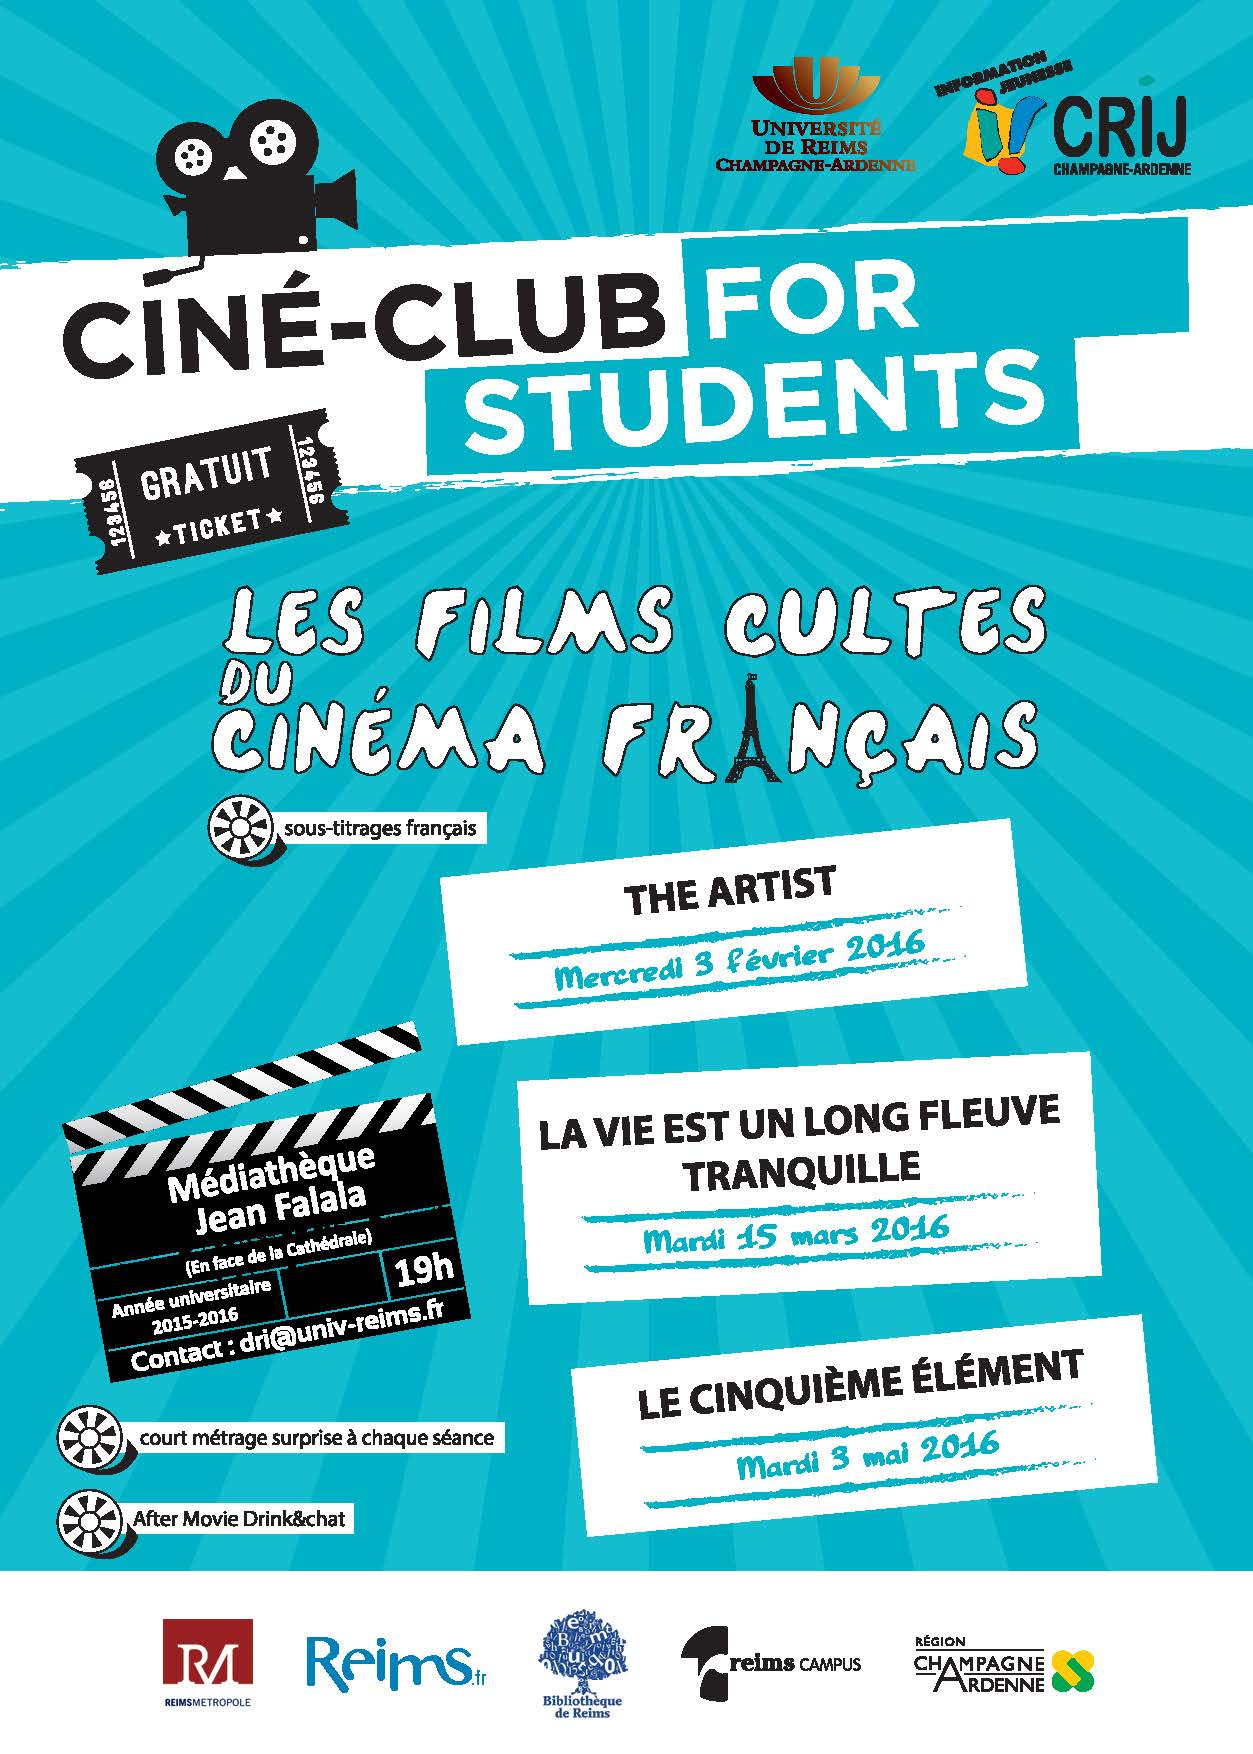 cin clubs for students les films fran ais cultes. Black Bedroom Furniture Sets. Home Design Ideas